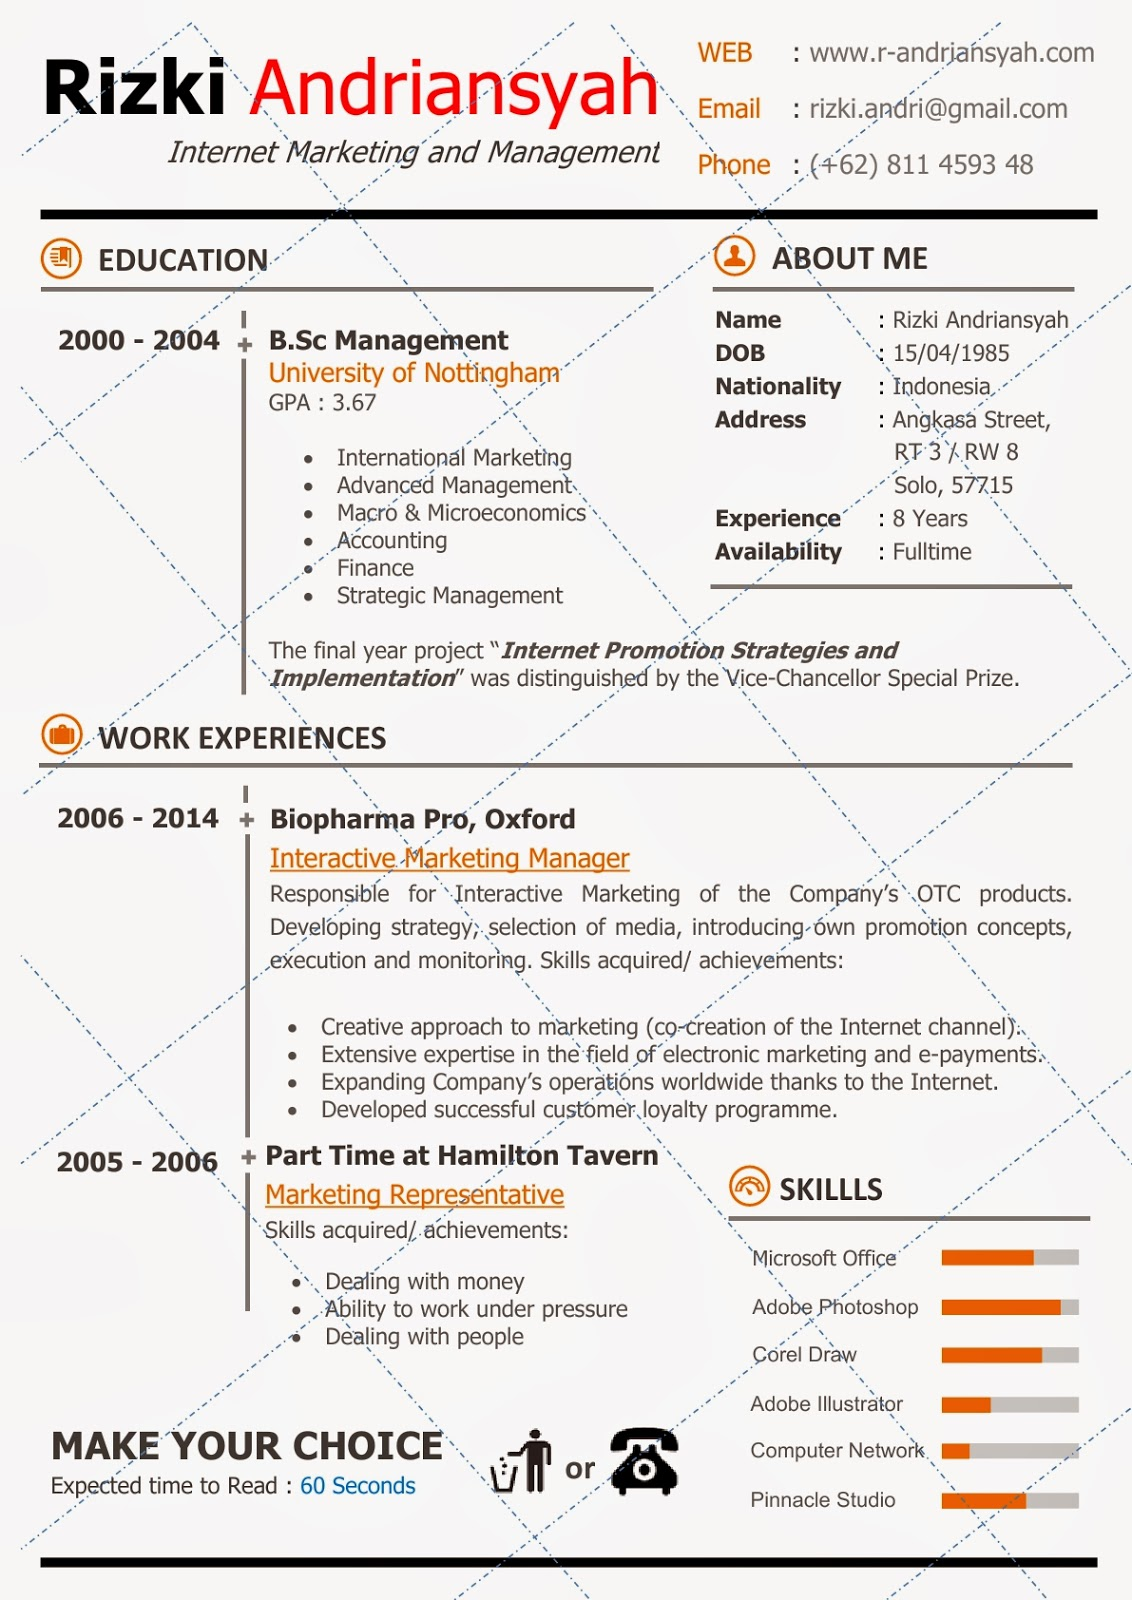 contoh resume format microsoft word cover letter templates contoh resume format microsoft word tips for formatting resumes using microsoft word 2010 contoh resume